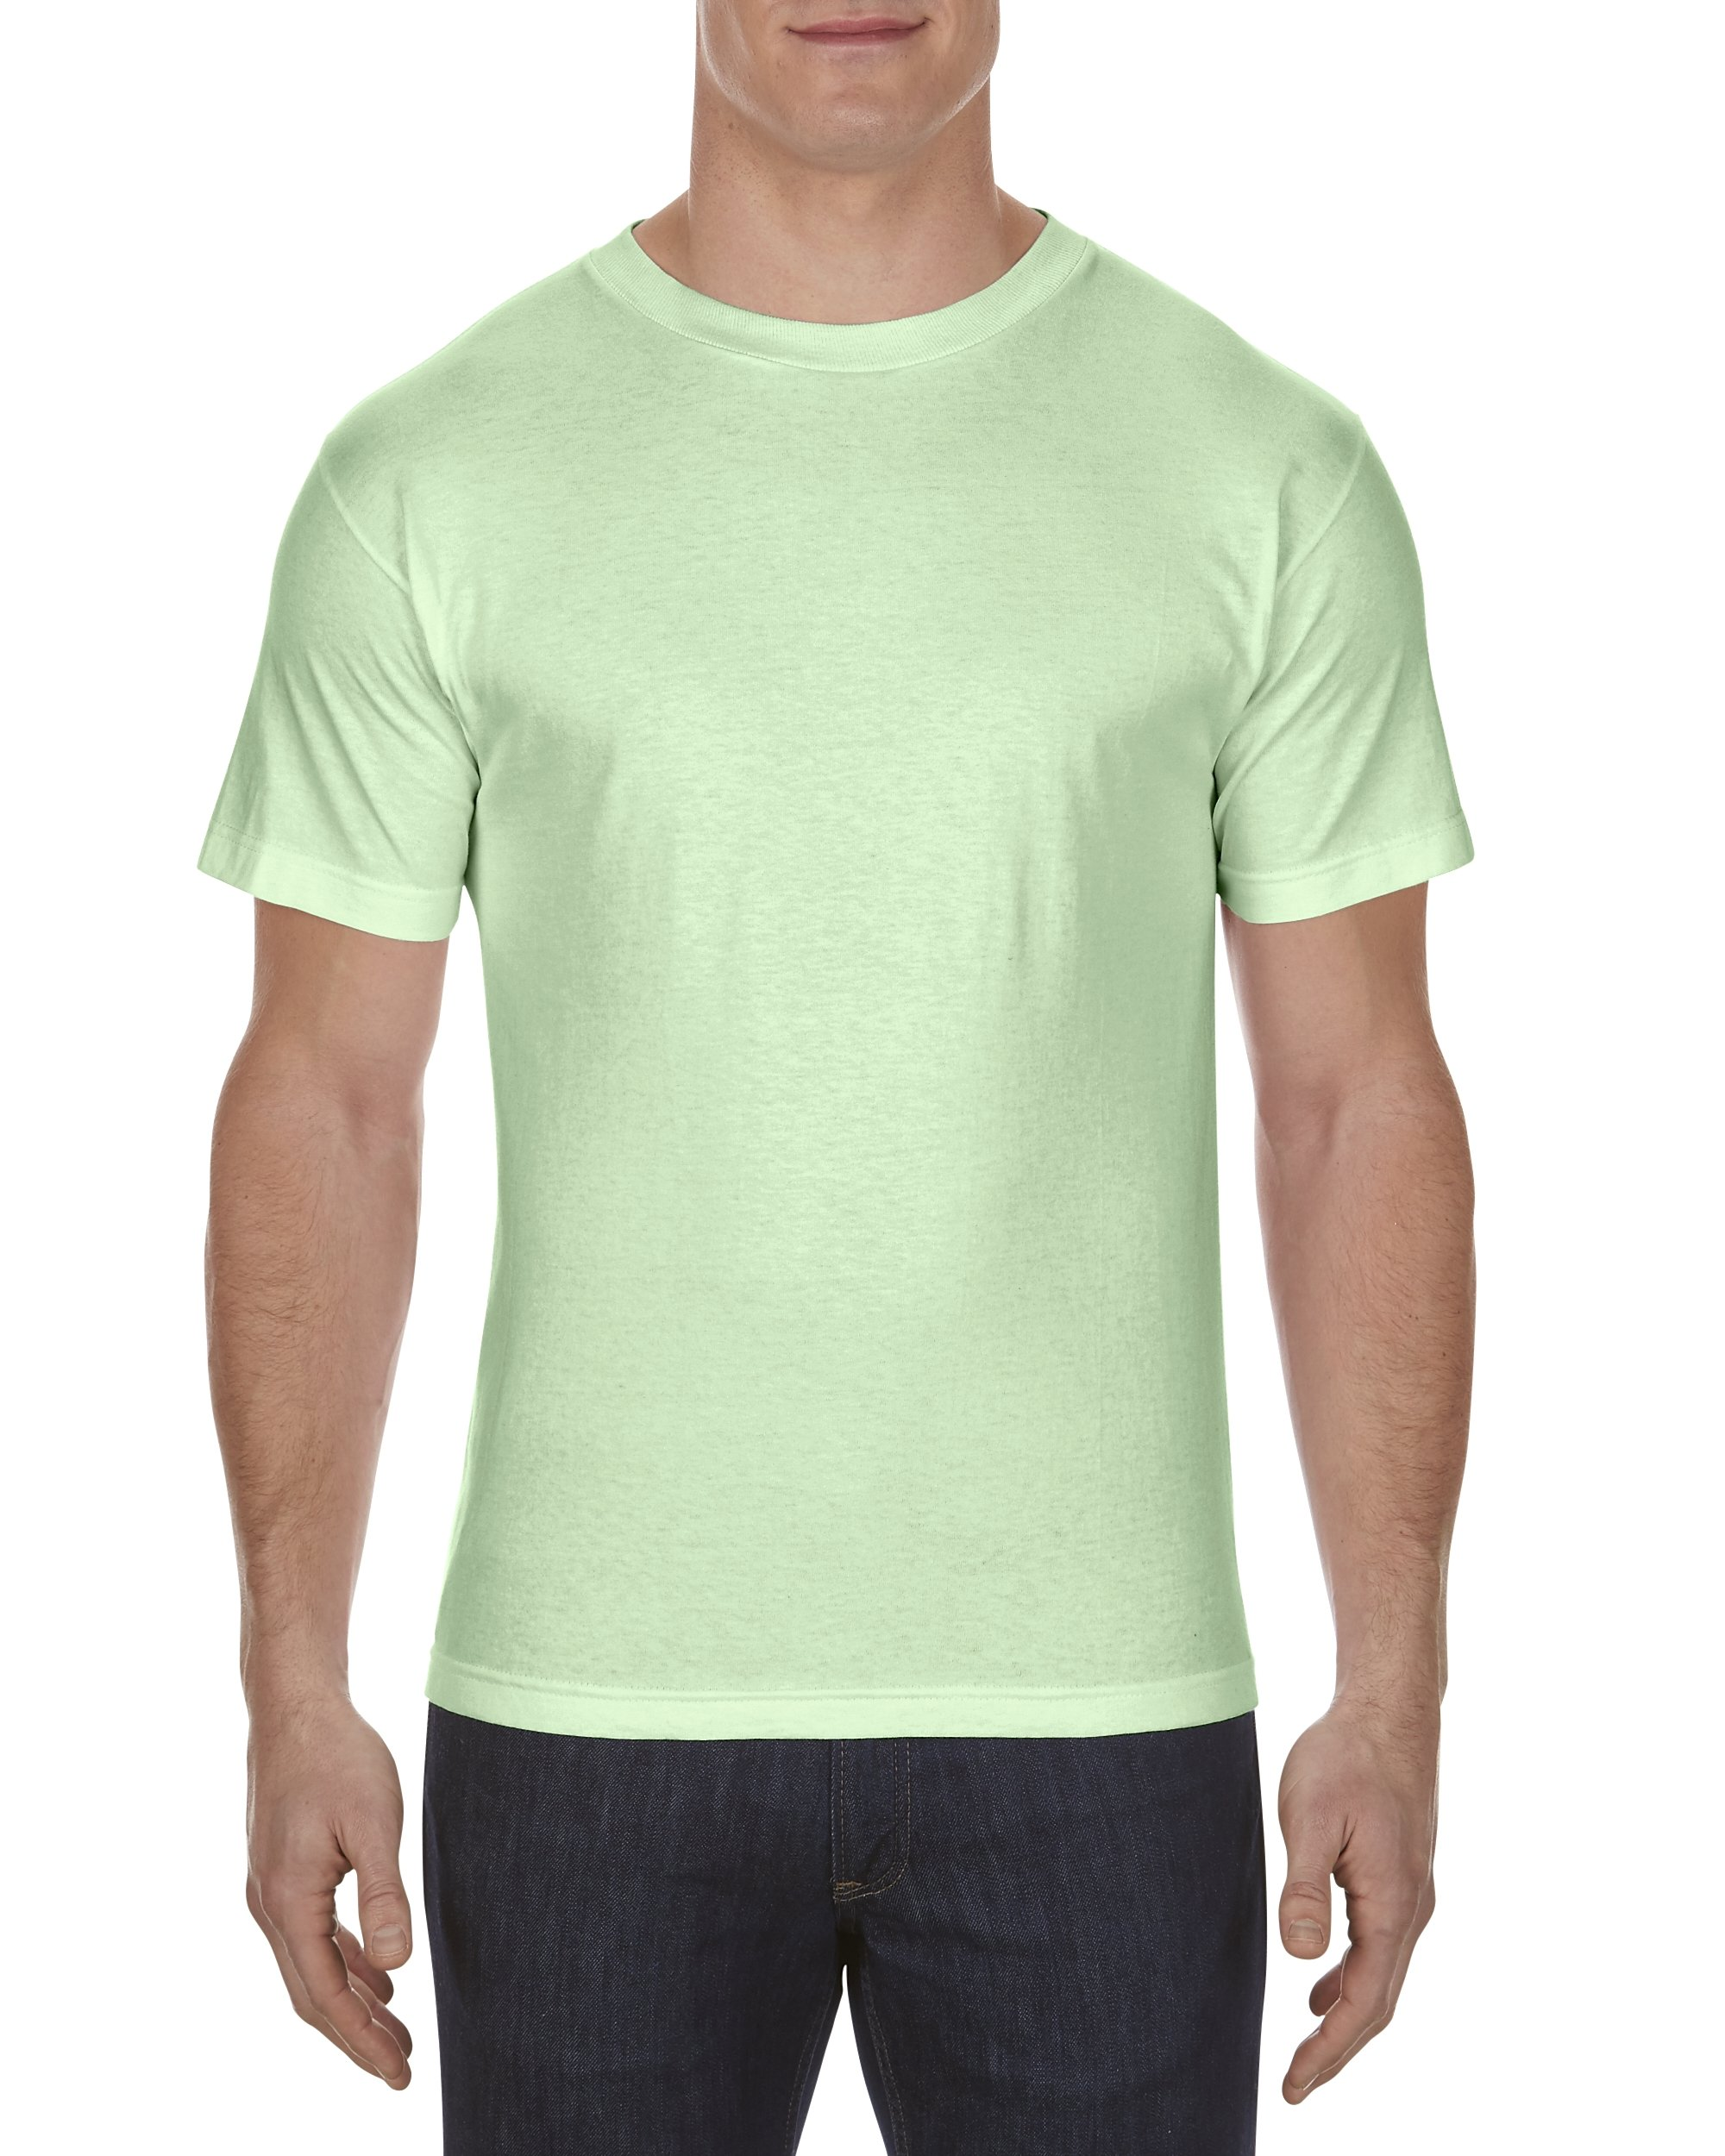 Alstyle Apparel AAA Men's Classic T-Shirt, Mint, 2X-Large